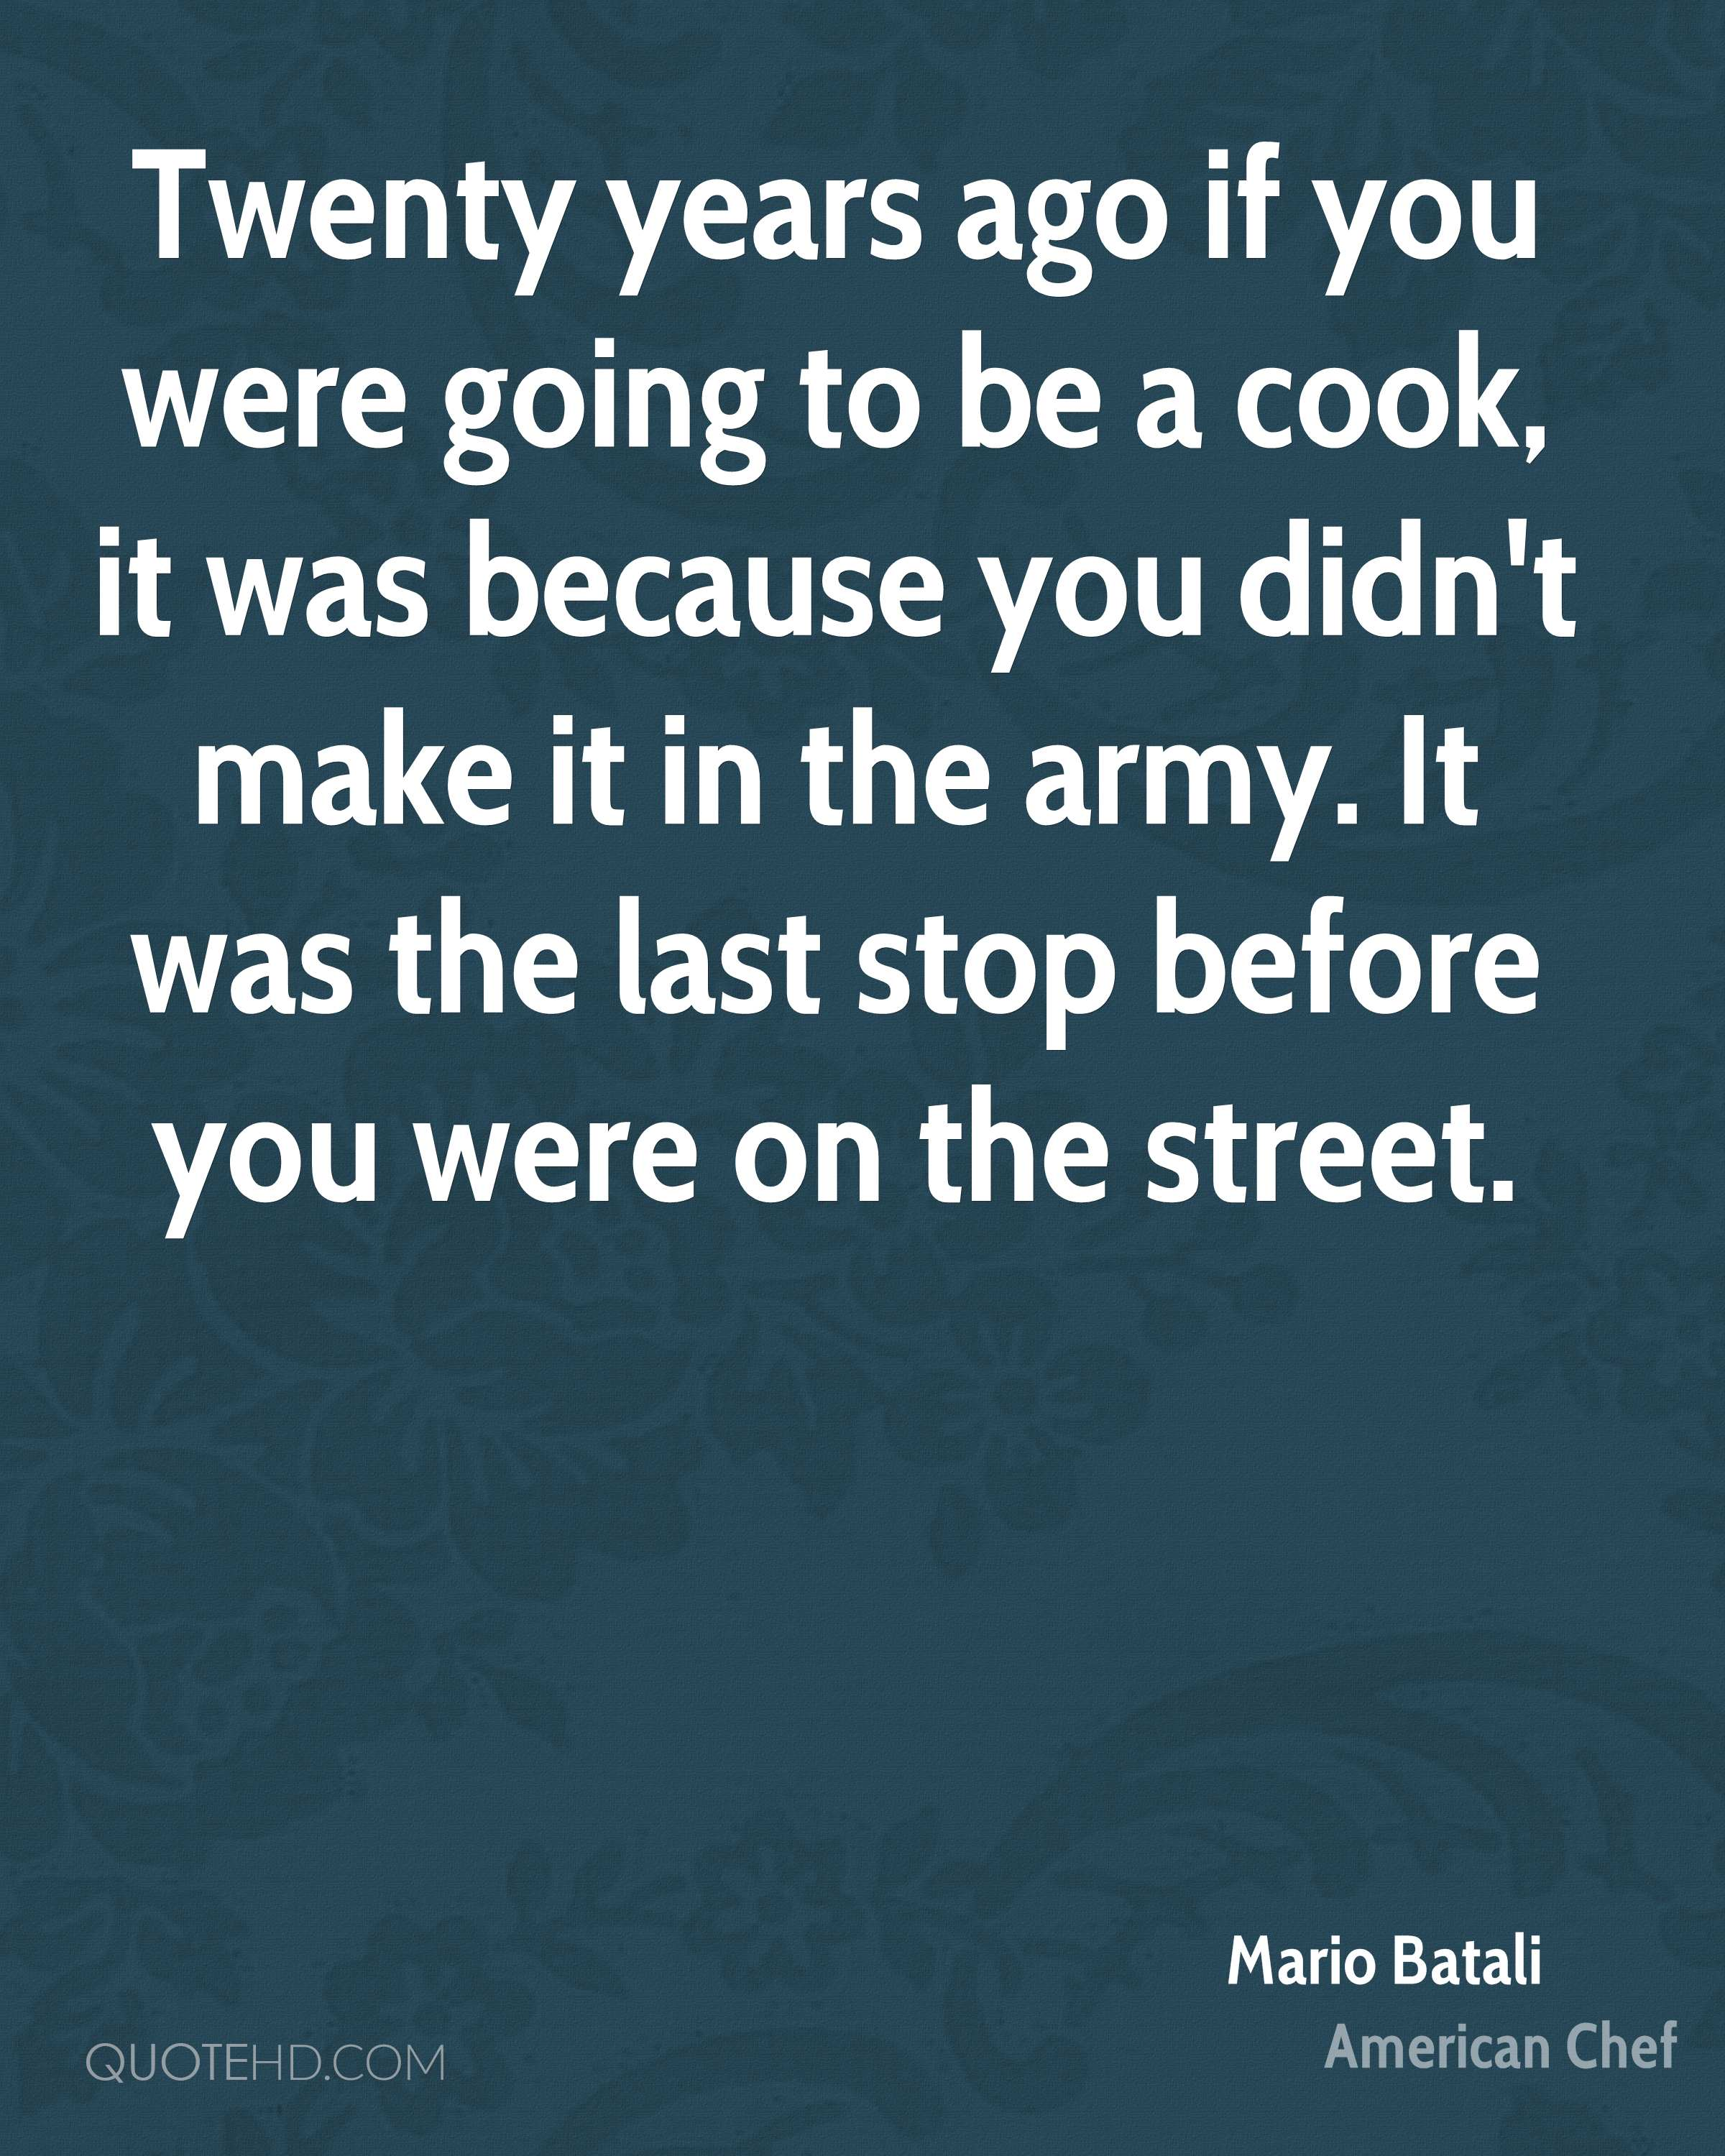 Twenty years ago if you were going to be a cook, it was because you didn't make it in the army. It was the last stop before you were on the street.